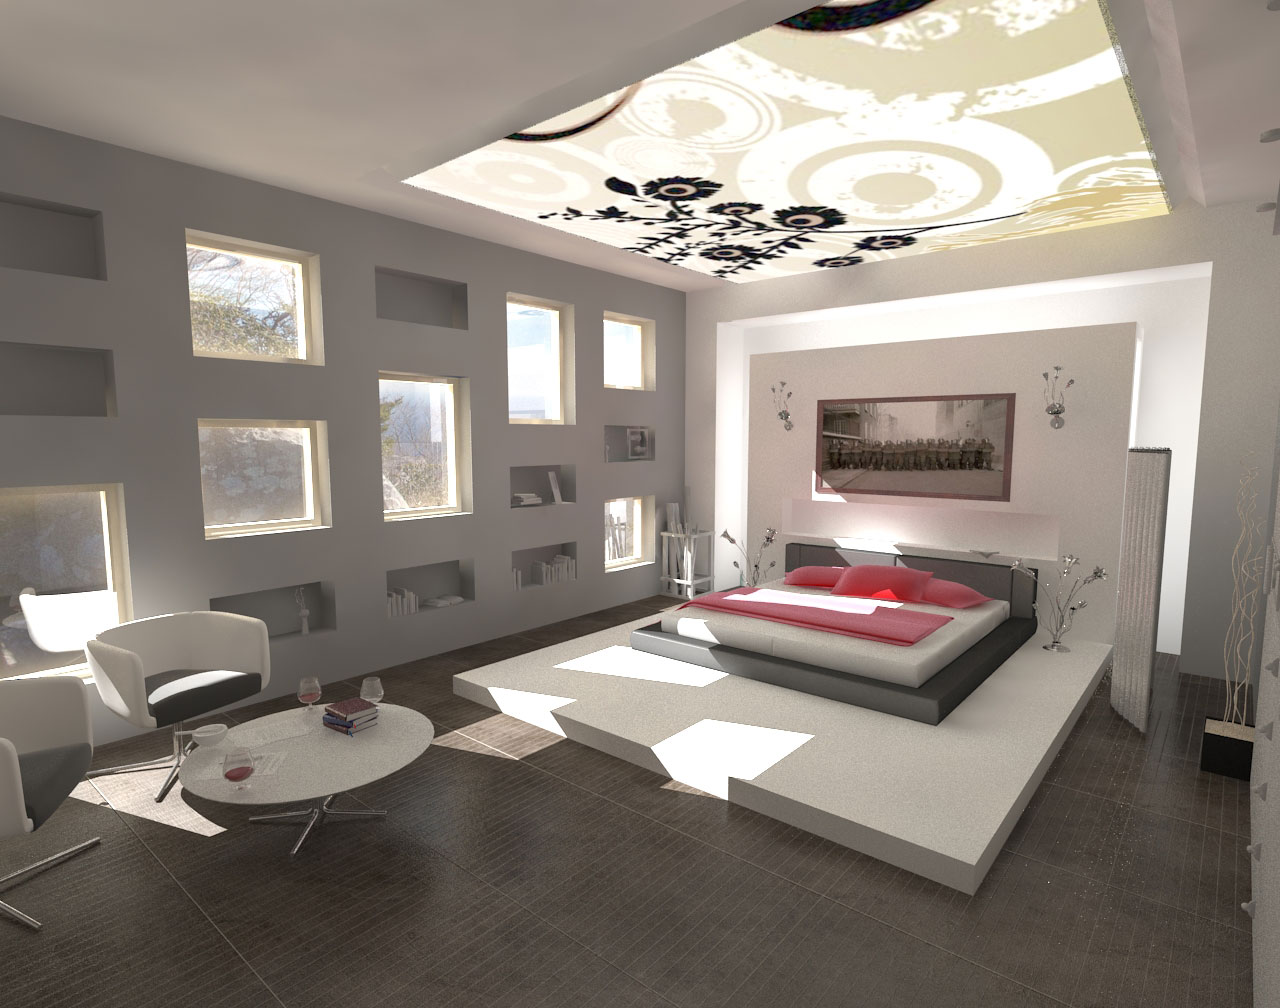 Decorations minimalist design modern bedroom interior for New house bedroom ideas